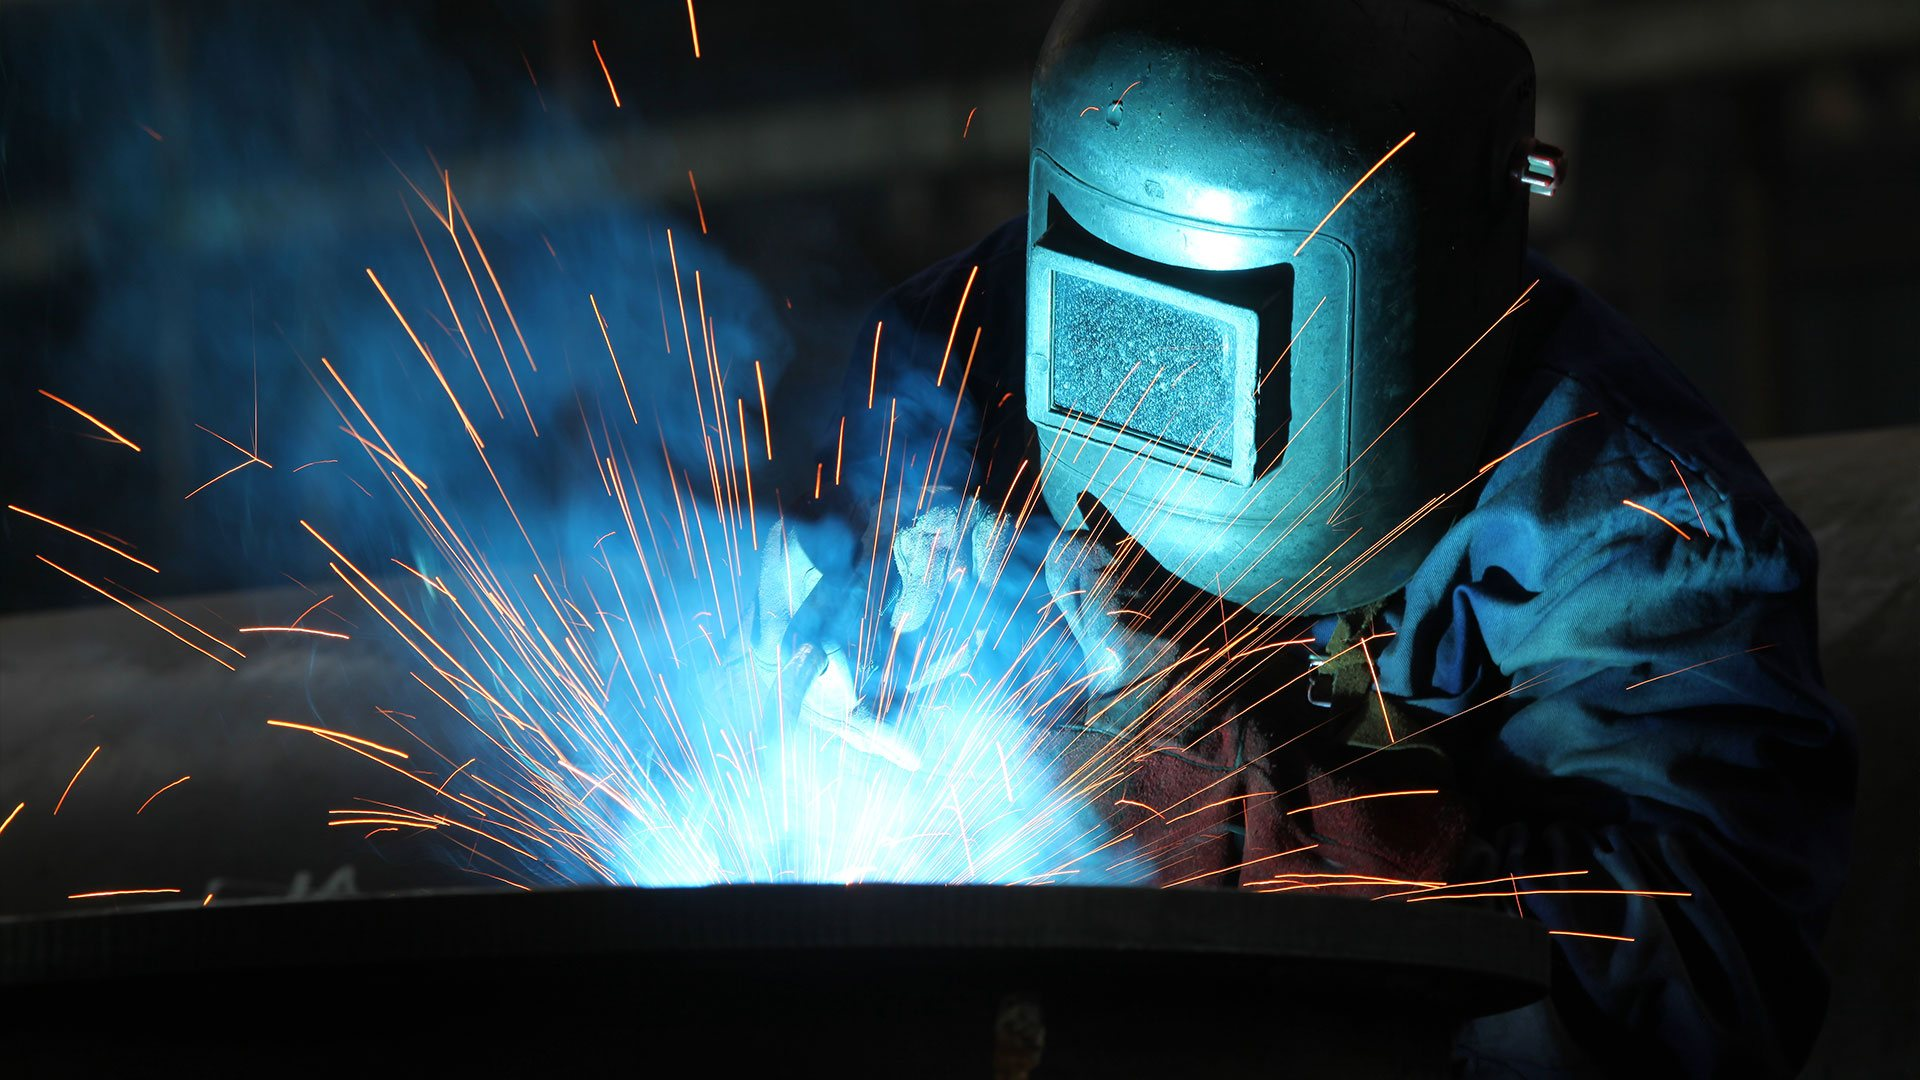 Scranton Certified Welders, CNC Machining and Metal Fabrication